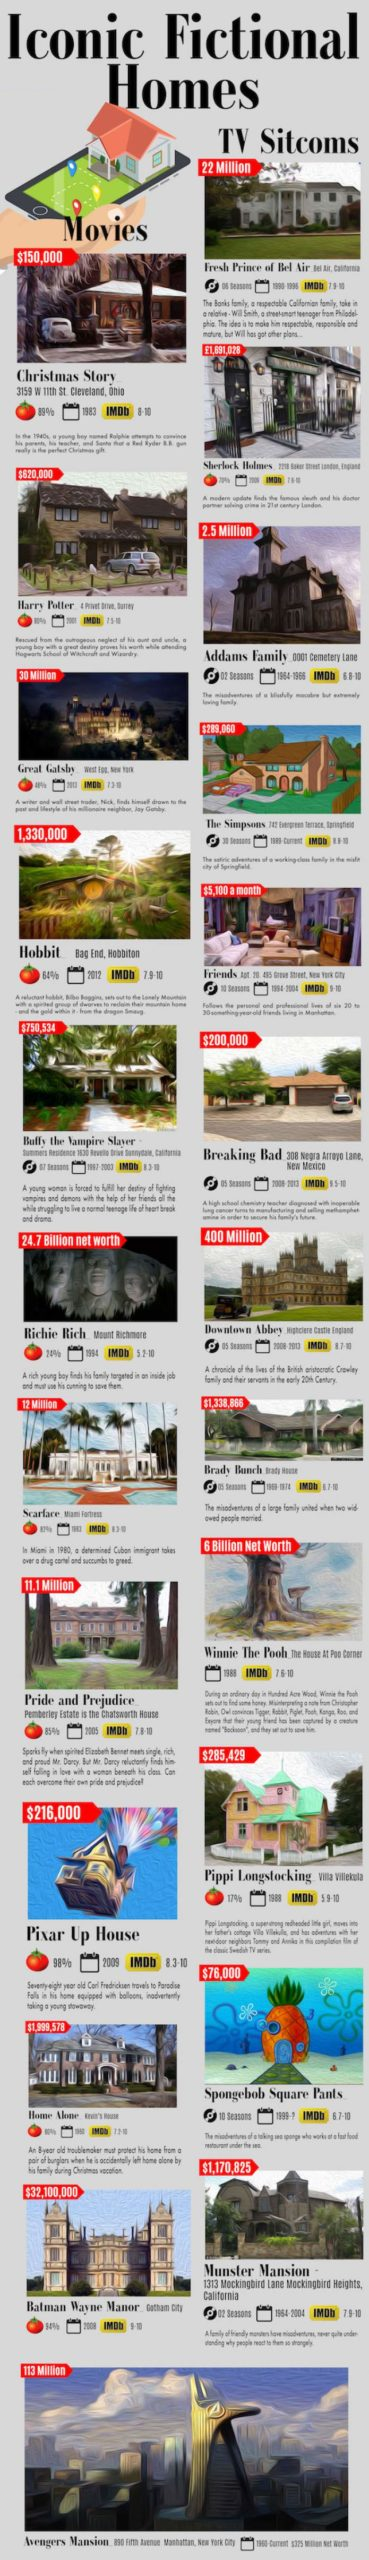 Iconic-Fictional-Homes